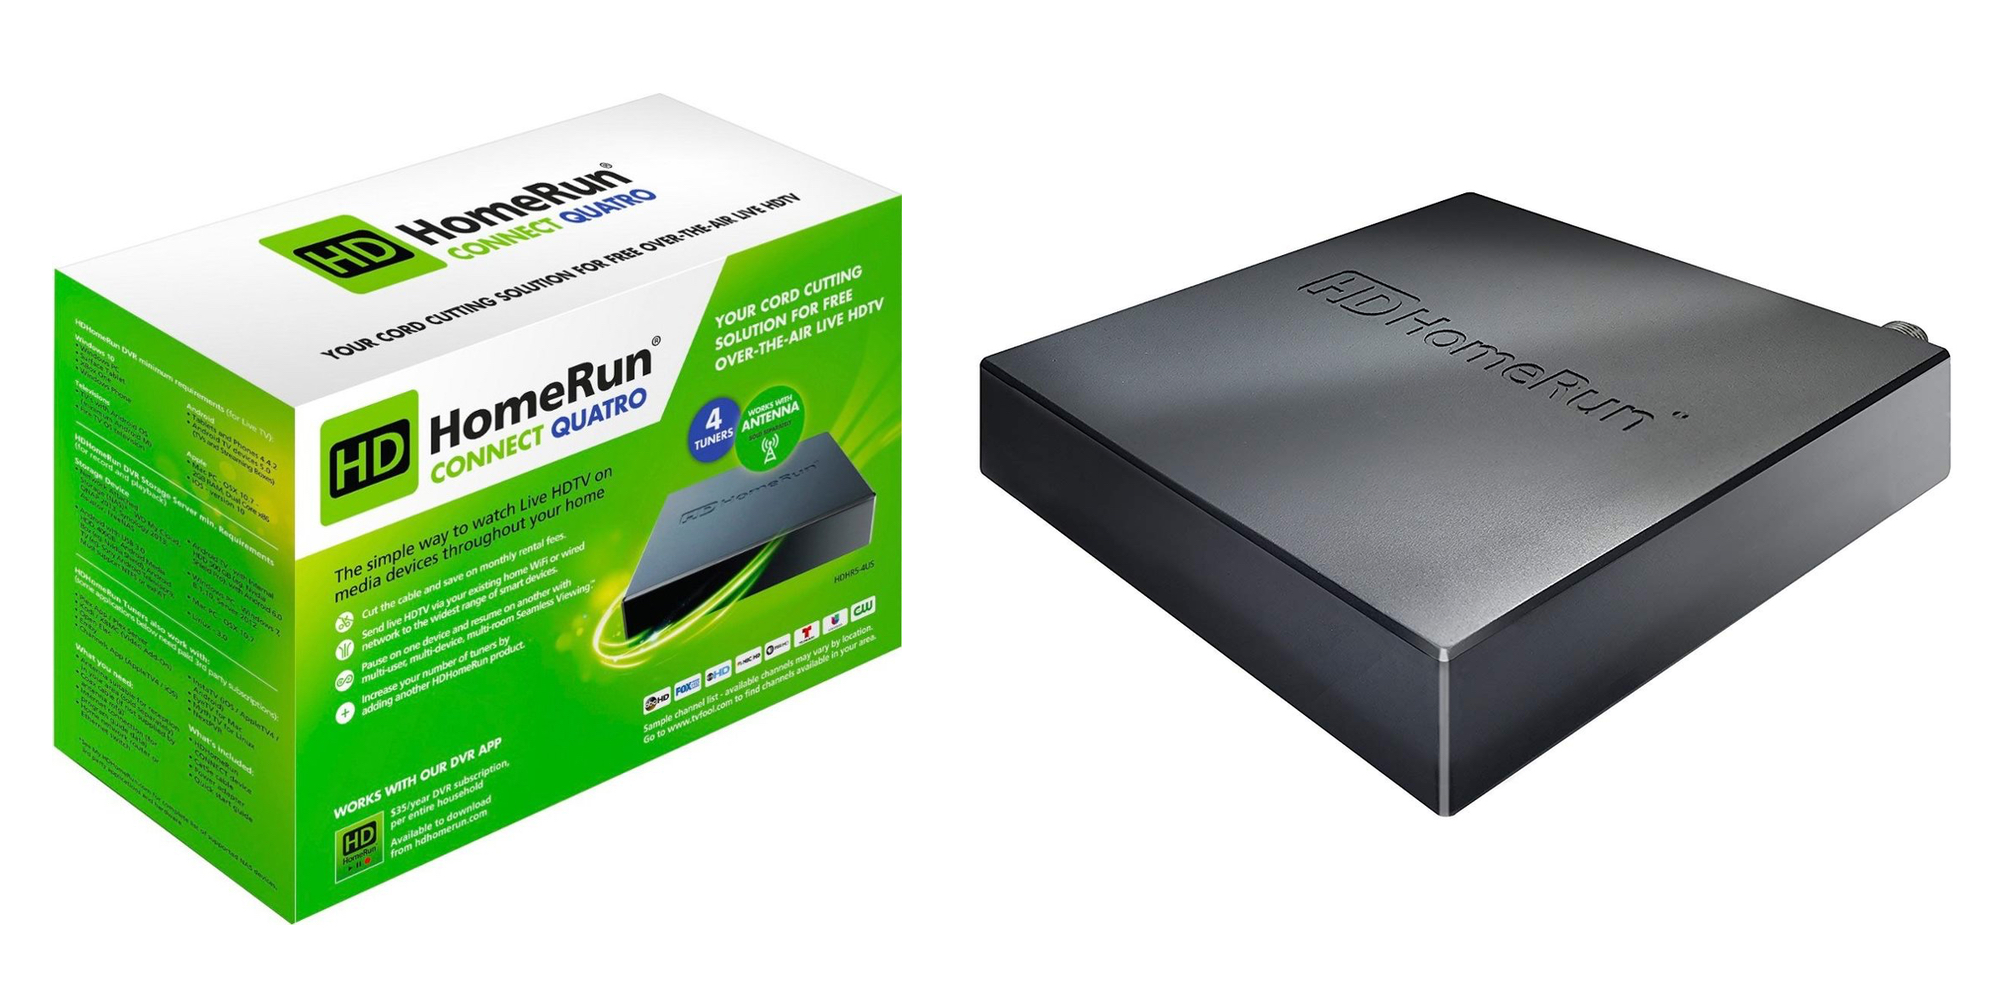 Cut the cord and DVR your favorite shows w/ the HDHomeRun Connect Quatro for $110 (Reg. $150)